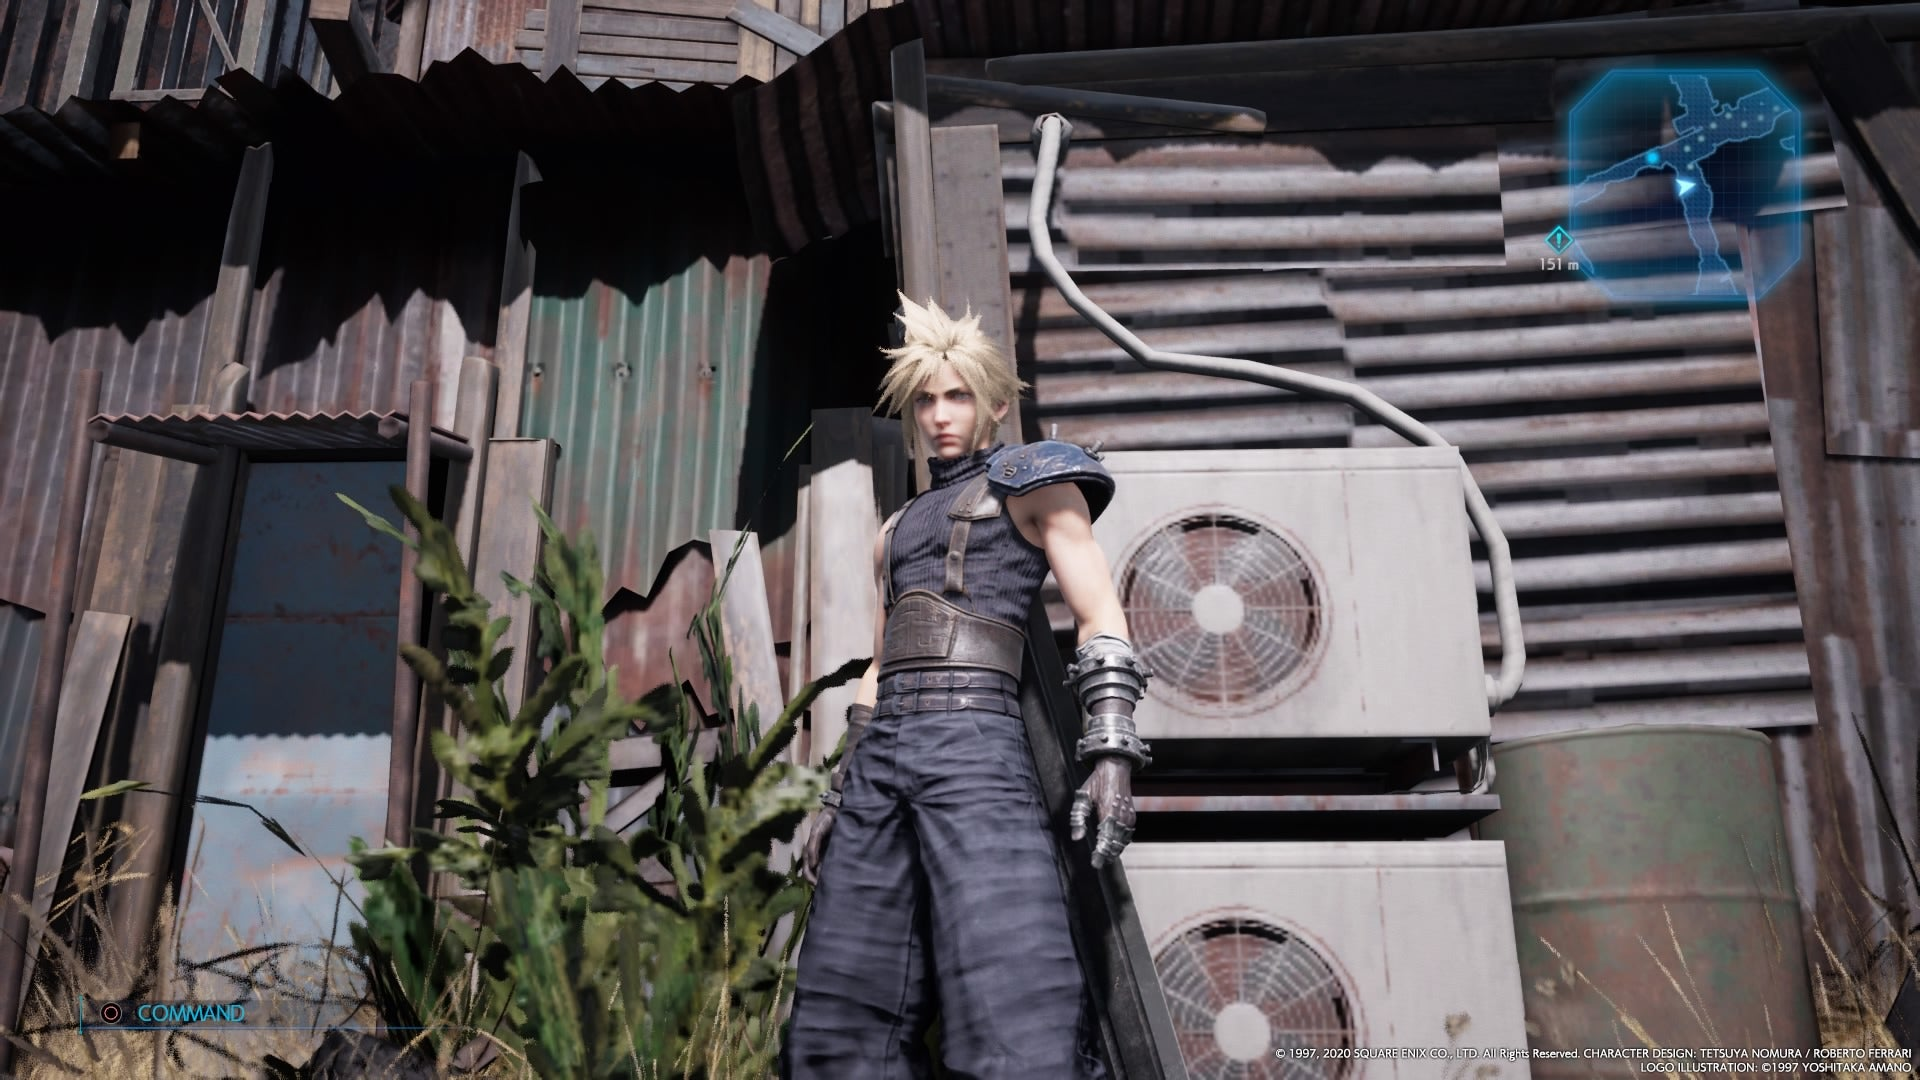 Final Fantasy VII Remake Has Very Realistic Air-Conditioning Units